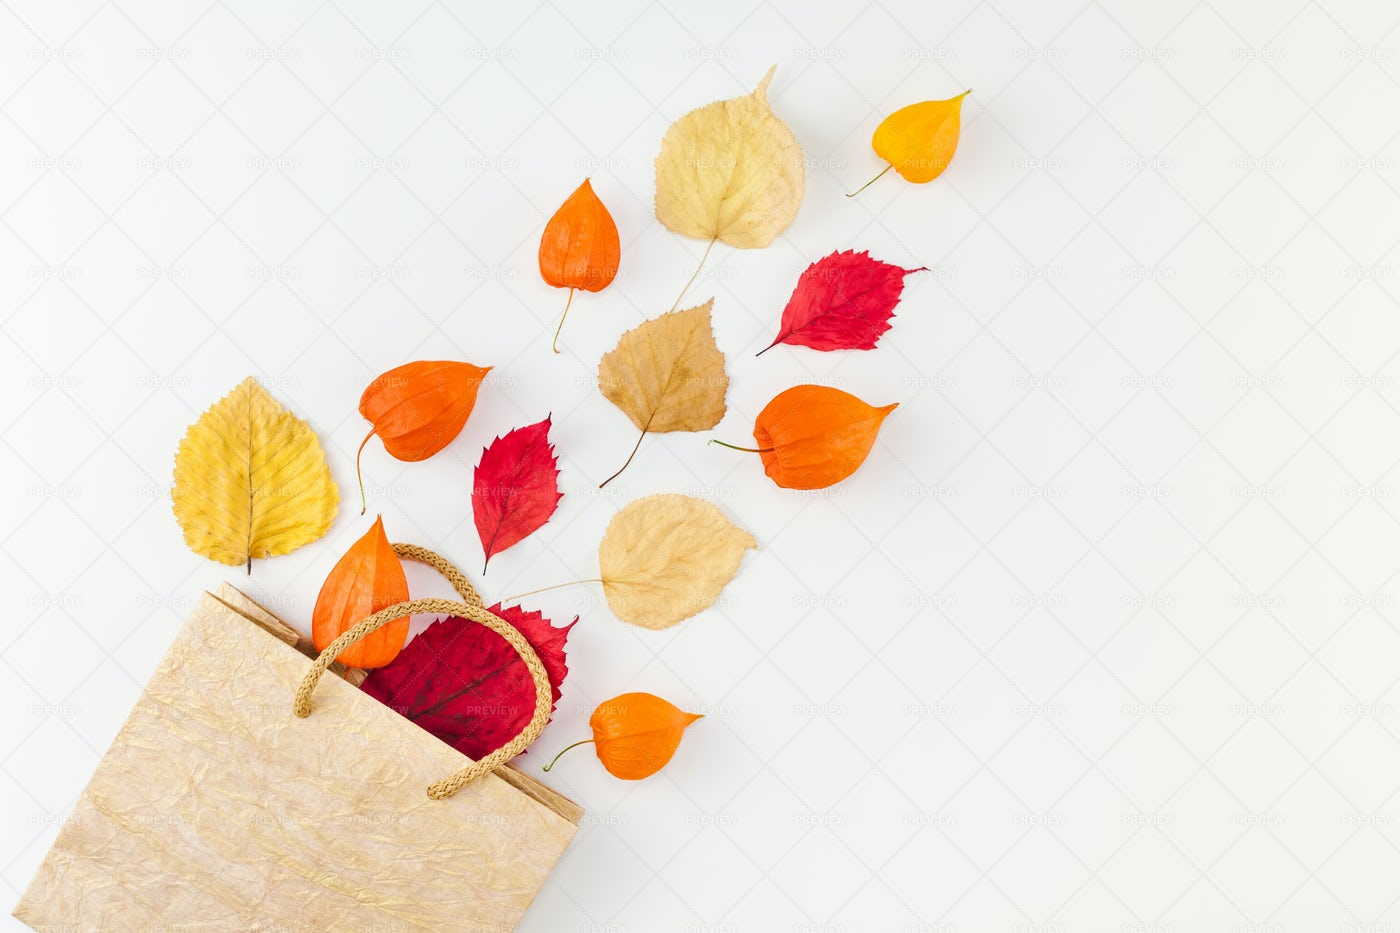 Shopping Bag With Autumn Leaves: Stock Photos